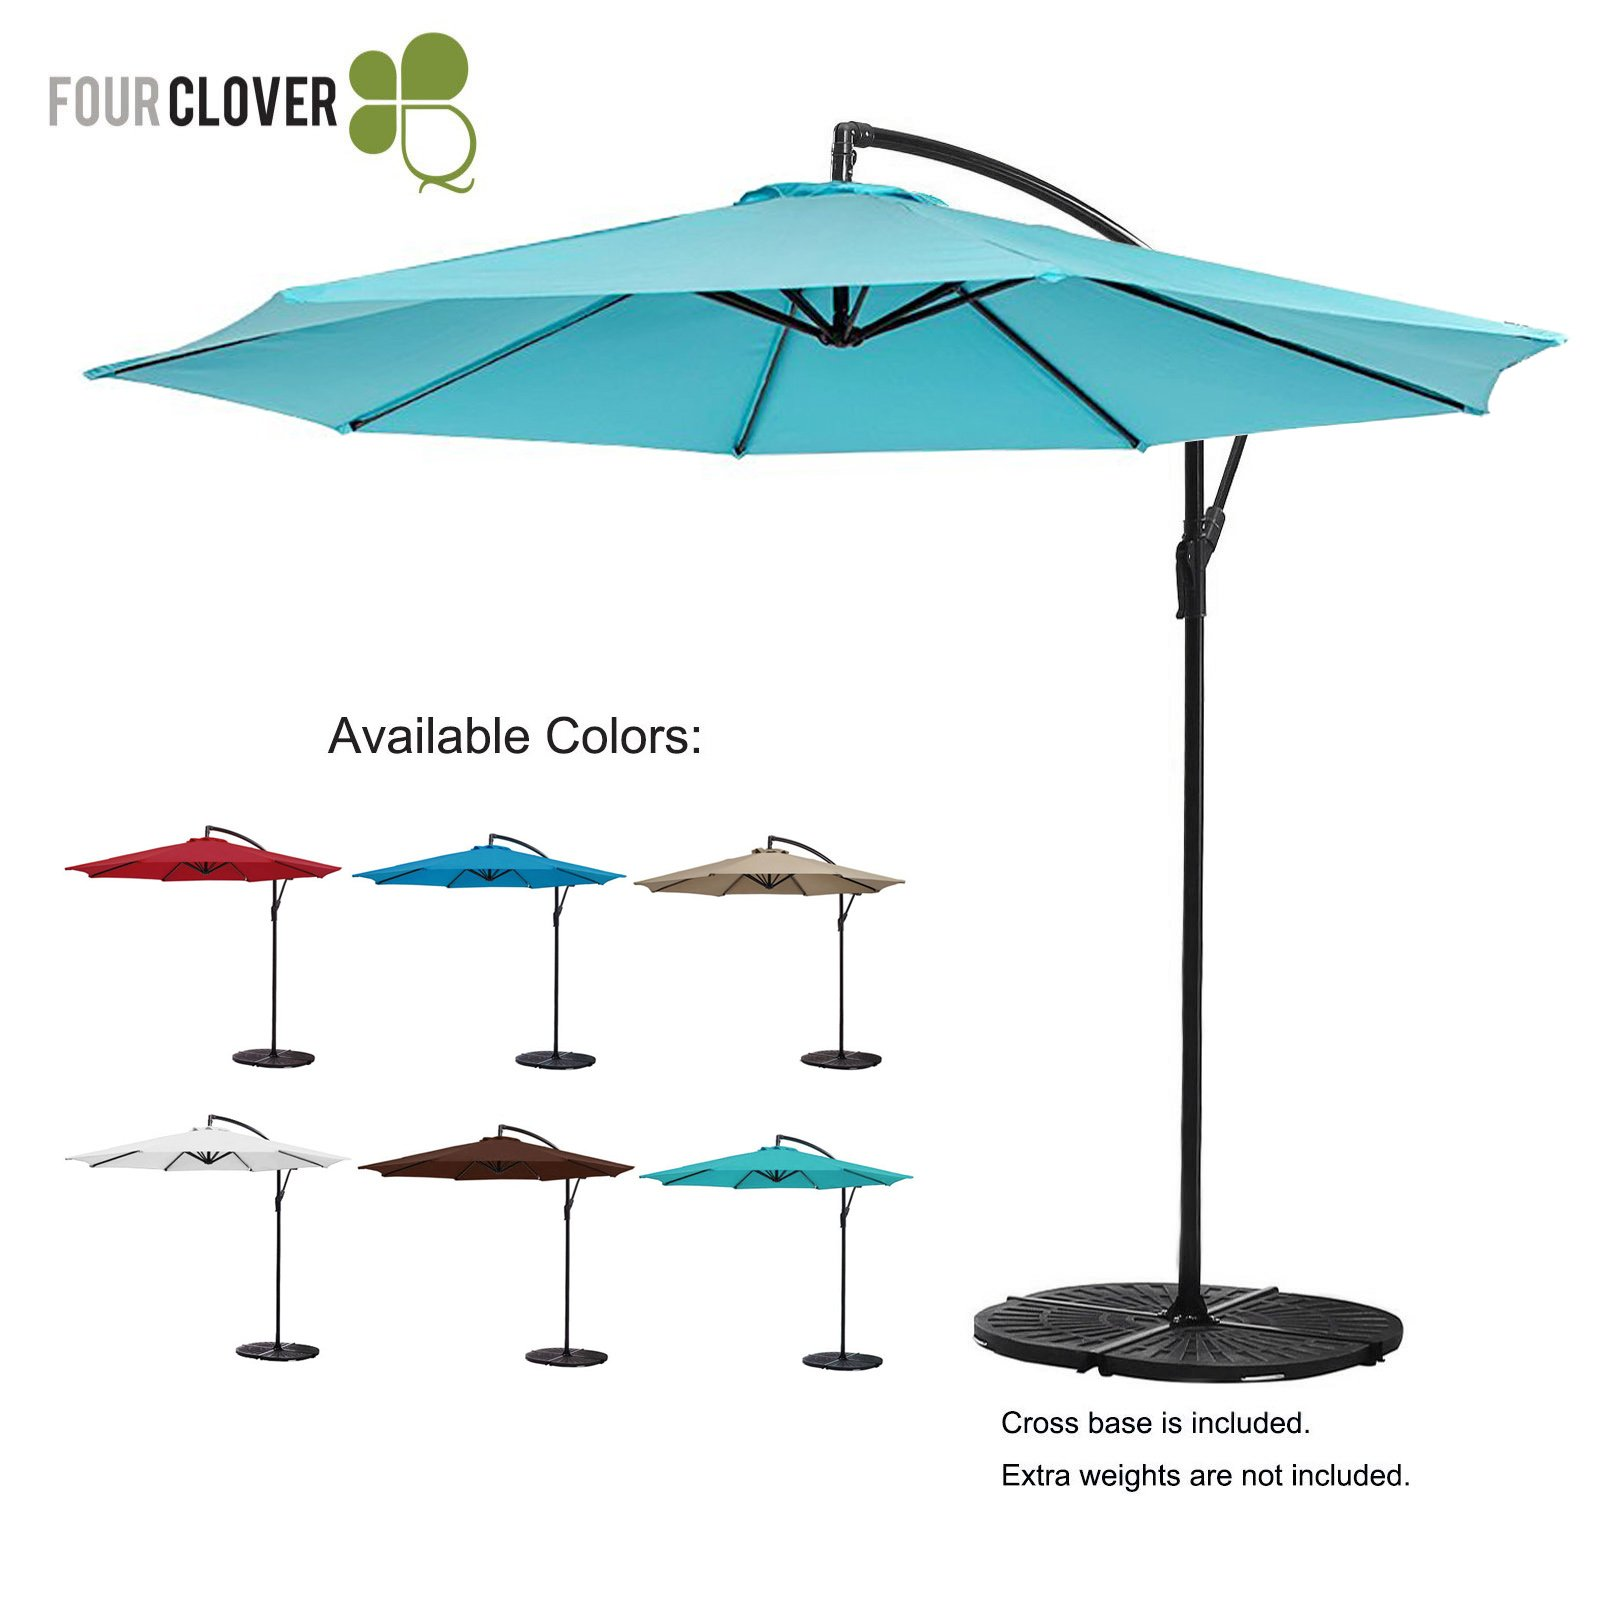 FOUR CLOVER 10 Ft Patio Umbrella Offset Hanging Umbrella Outdoor Market Umbrella Garden Umbrella, 250g/sqm Polyester, with Cross Base and Crank (Turquoise)